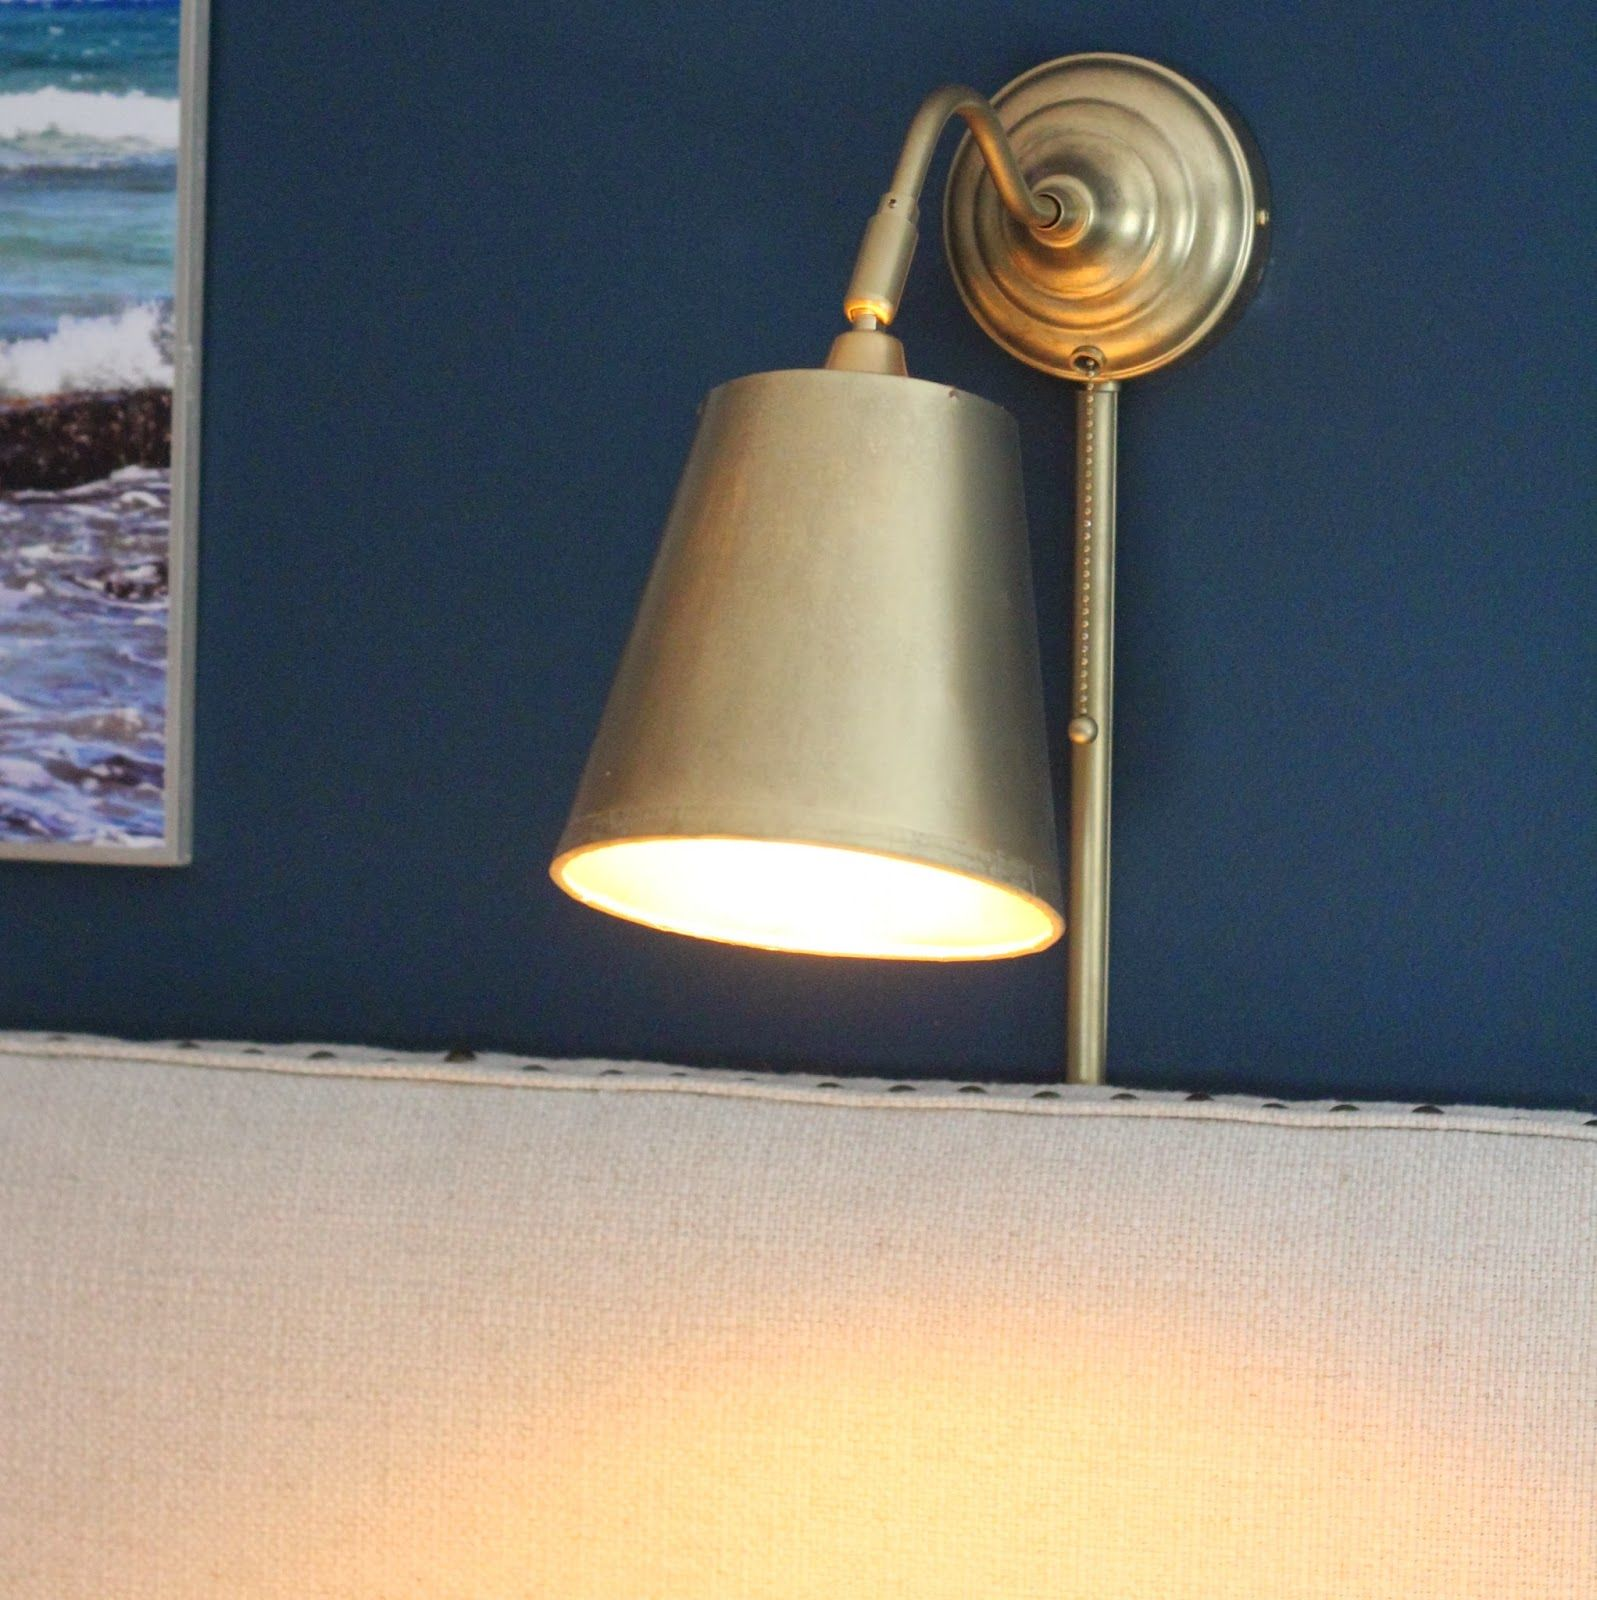 Ikea Wall Light Hack Ikea Wall Lights Ikea Wall Lamp Wall